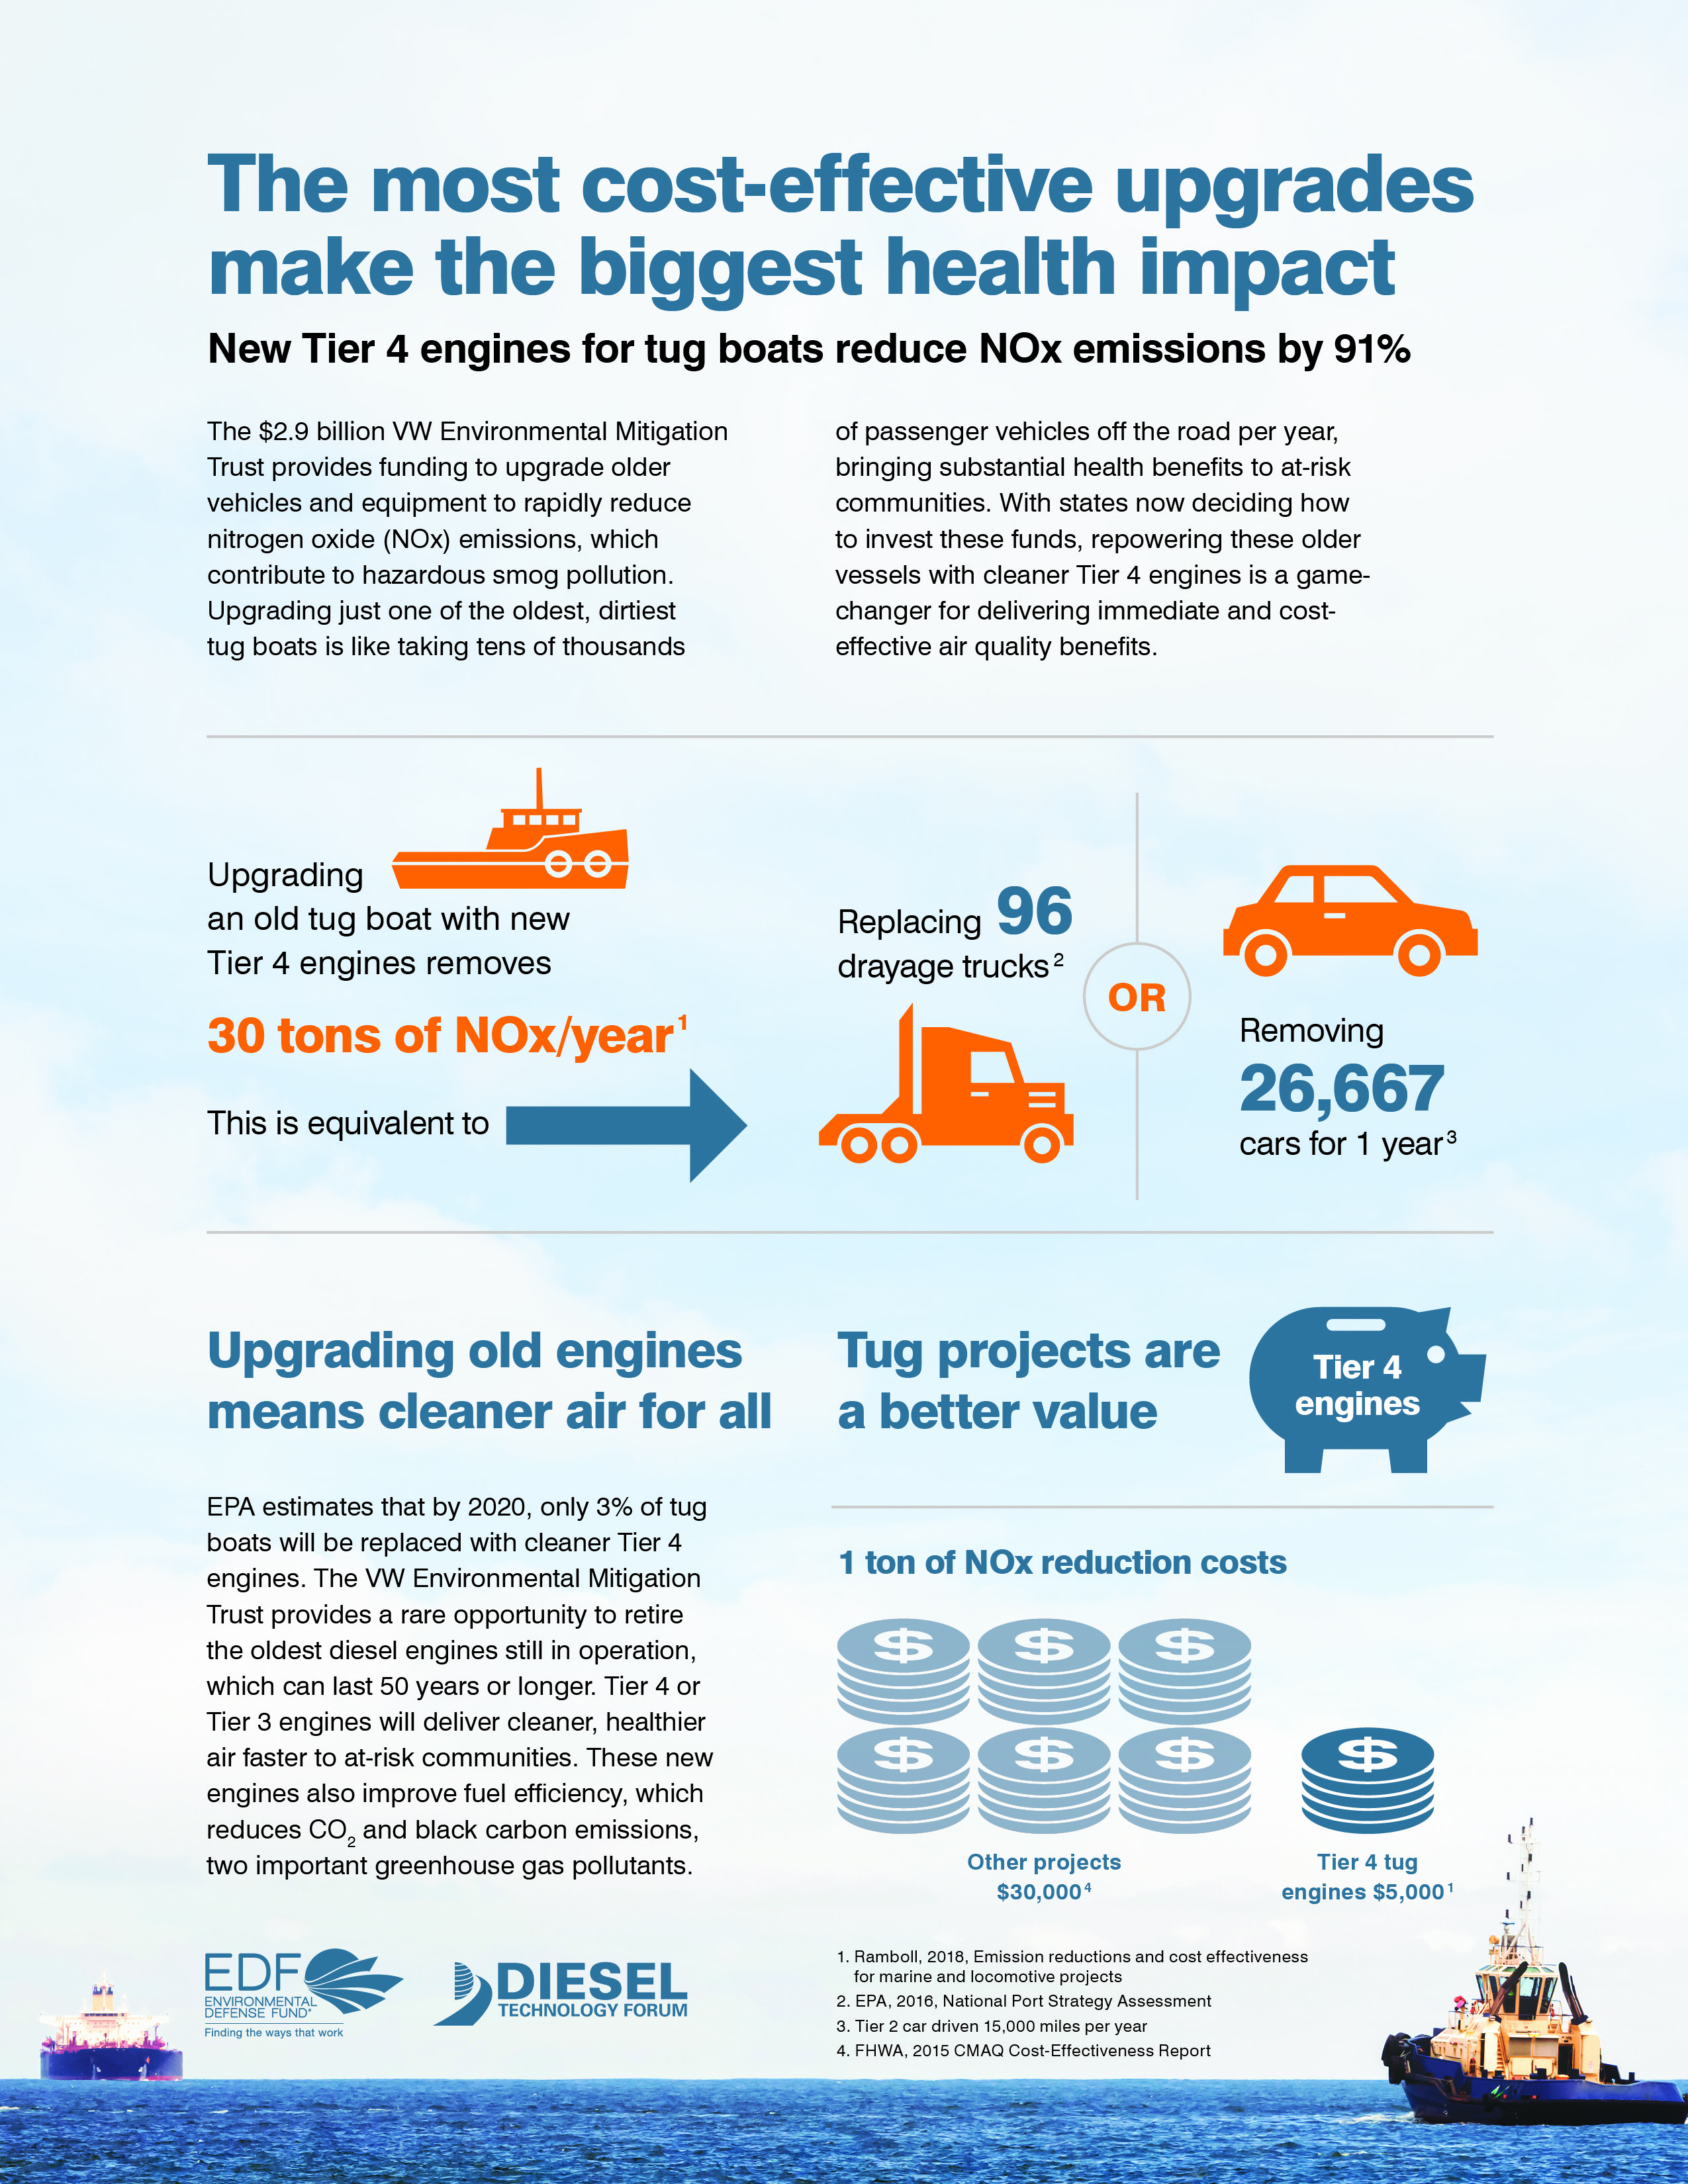 VW_Tier4Diesel_Infographic_Tug Final 3.7.18